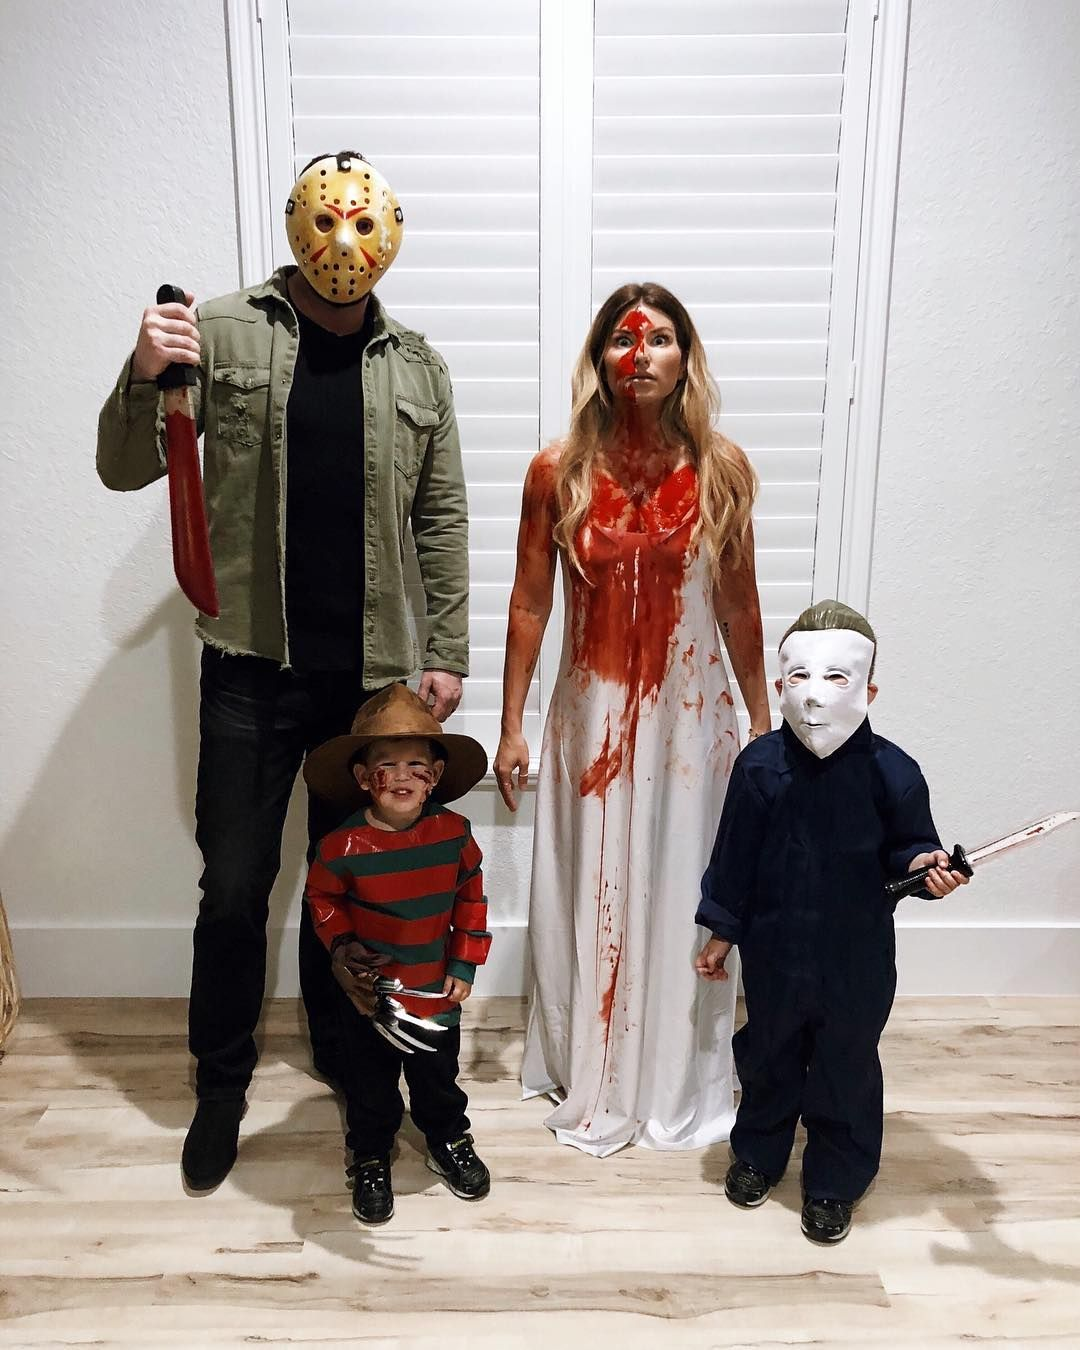 2020 M9vies As Halloween Costumes 60 Family Halloween Costumes to dress up your whole crew in the